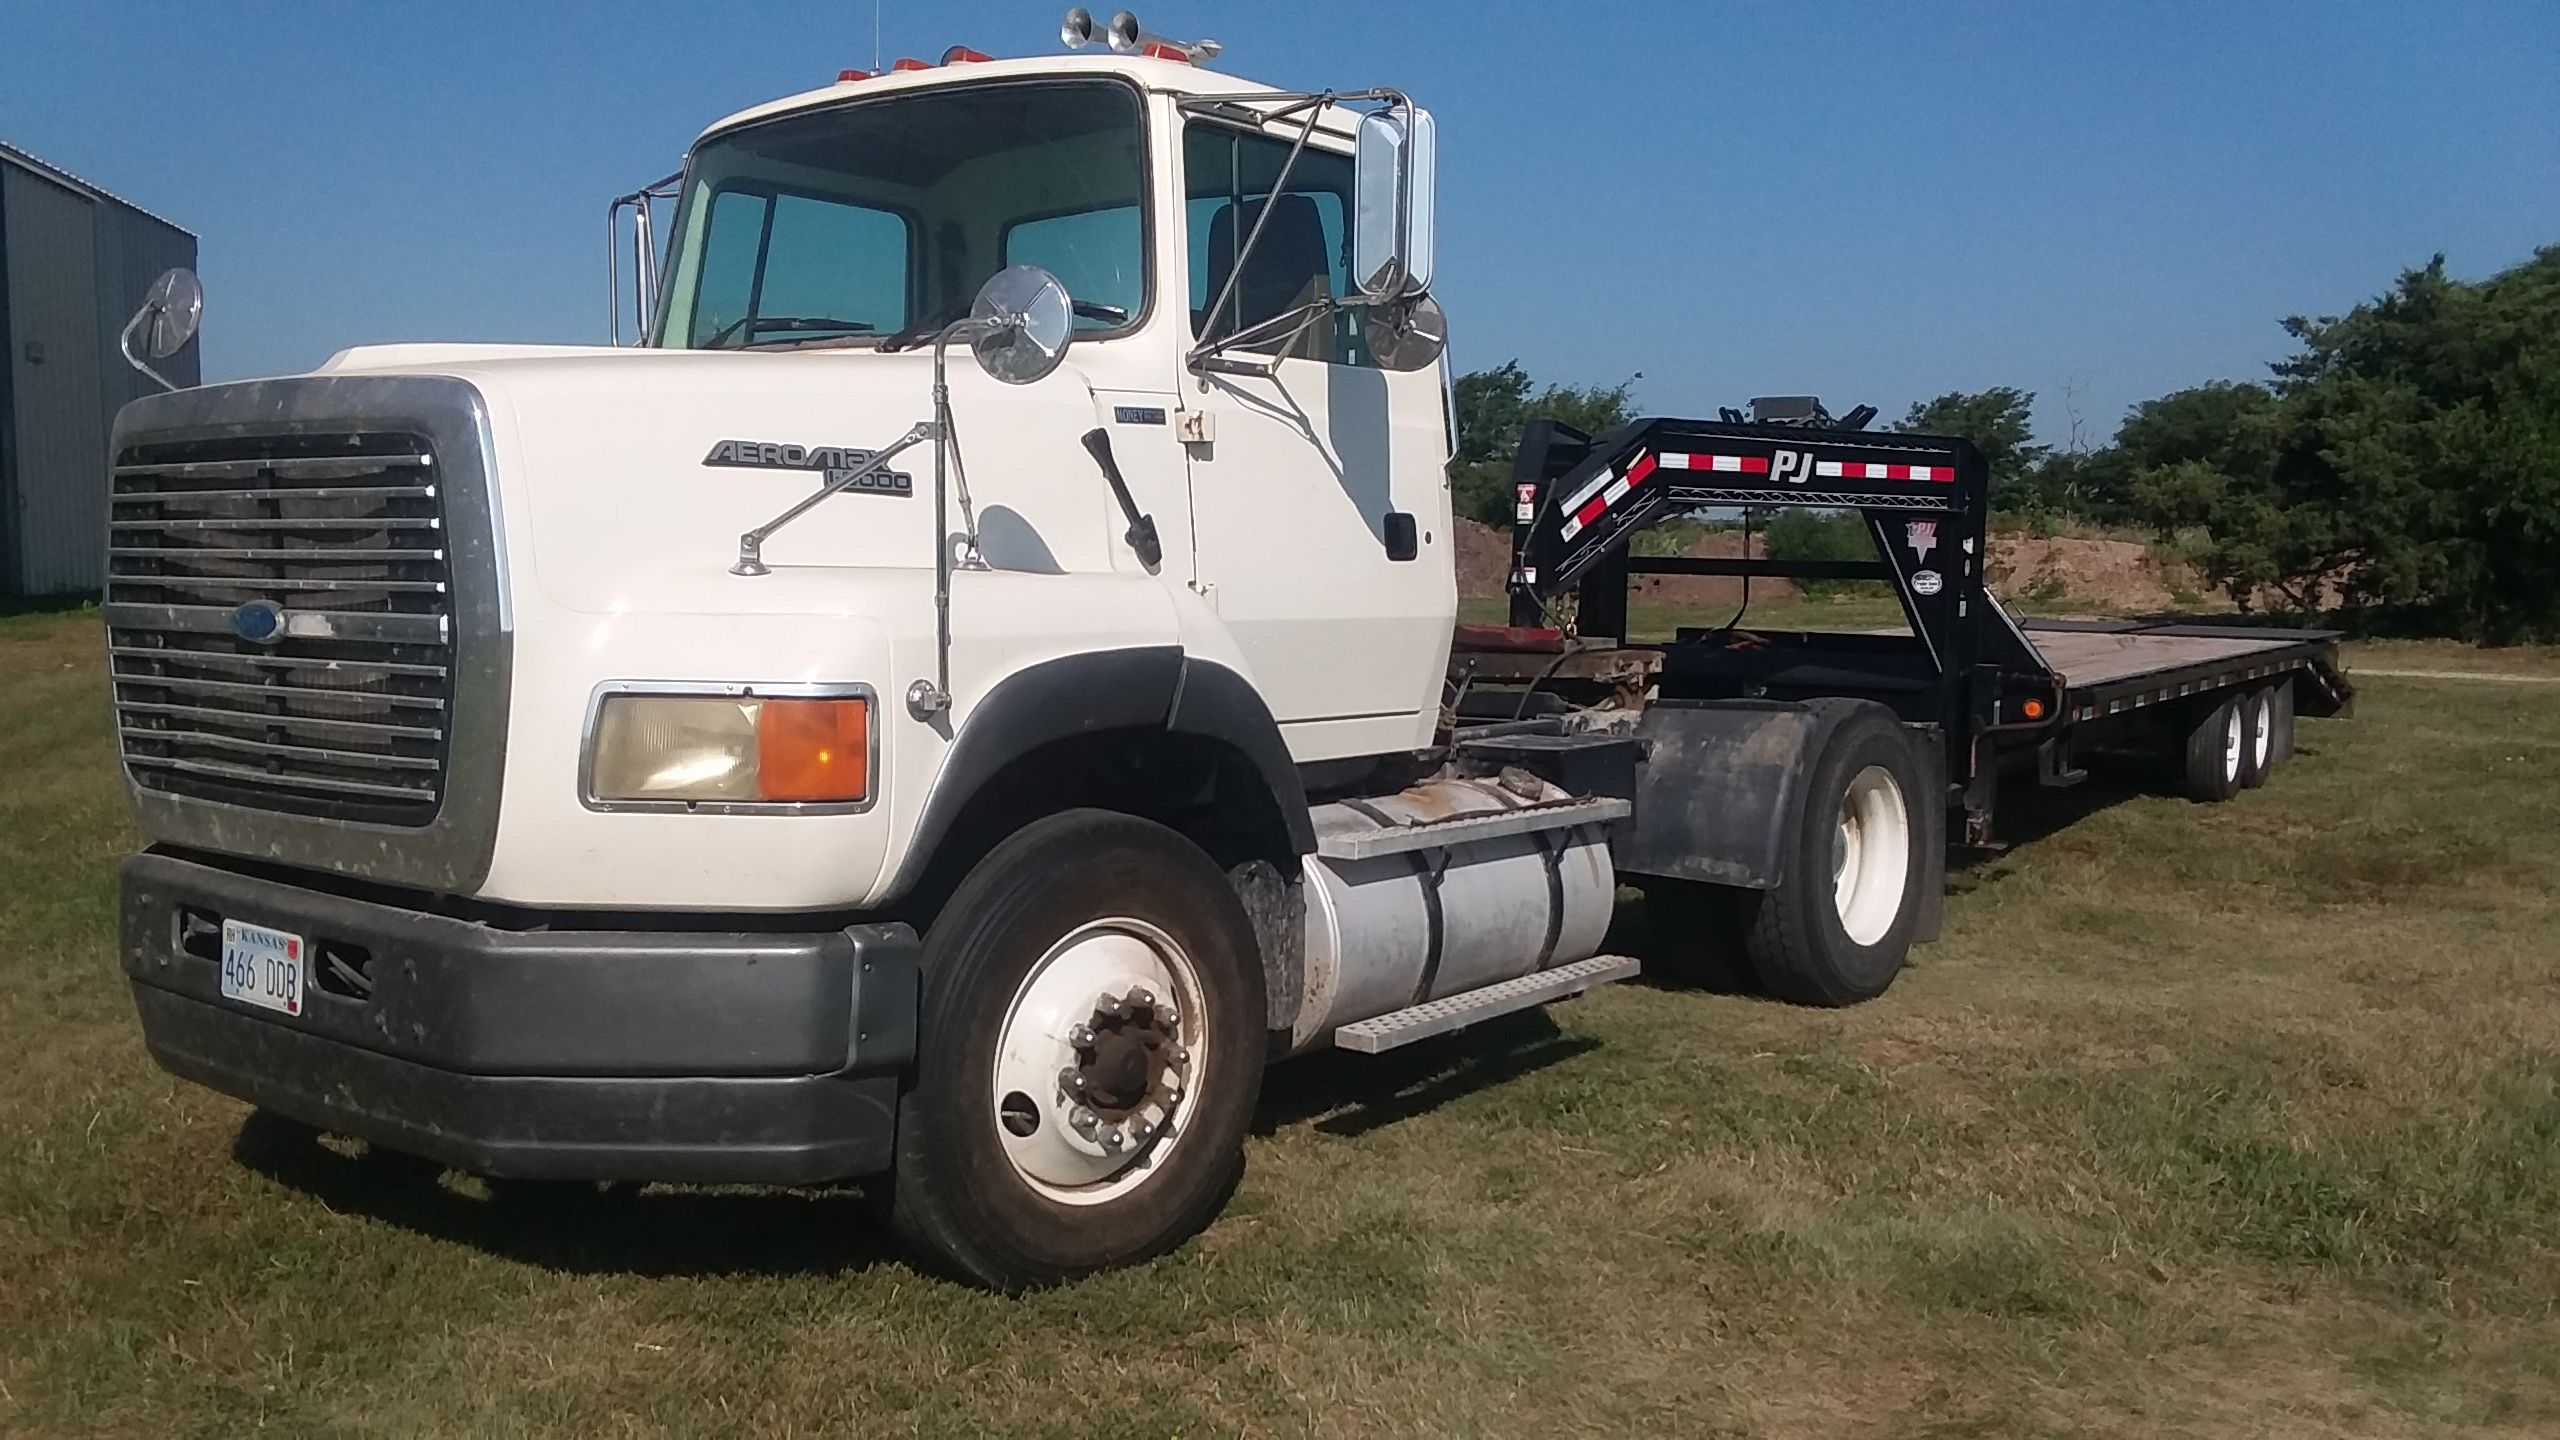 Item 62 in FARM MACHINERY AUCTION gallery